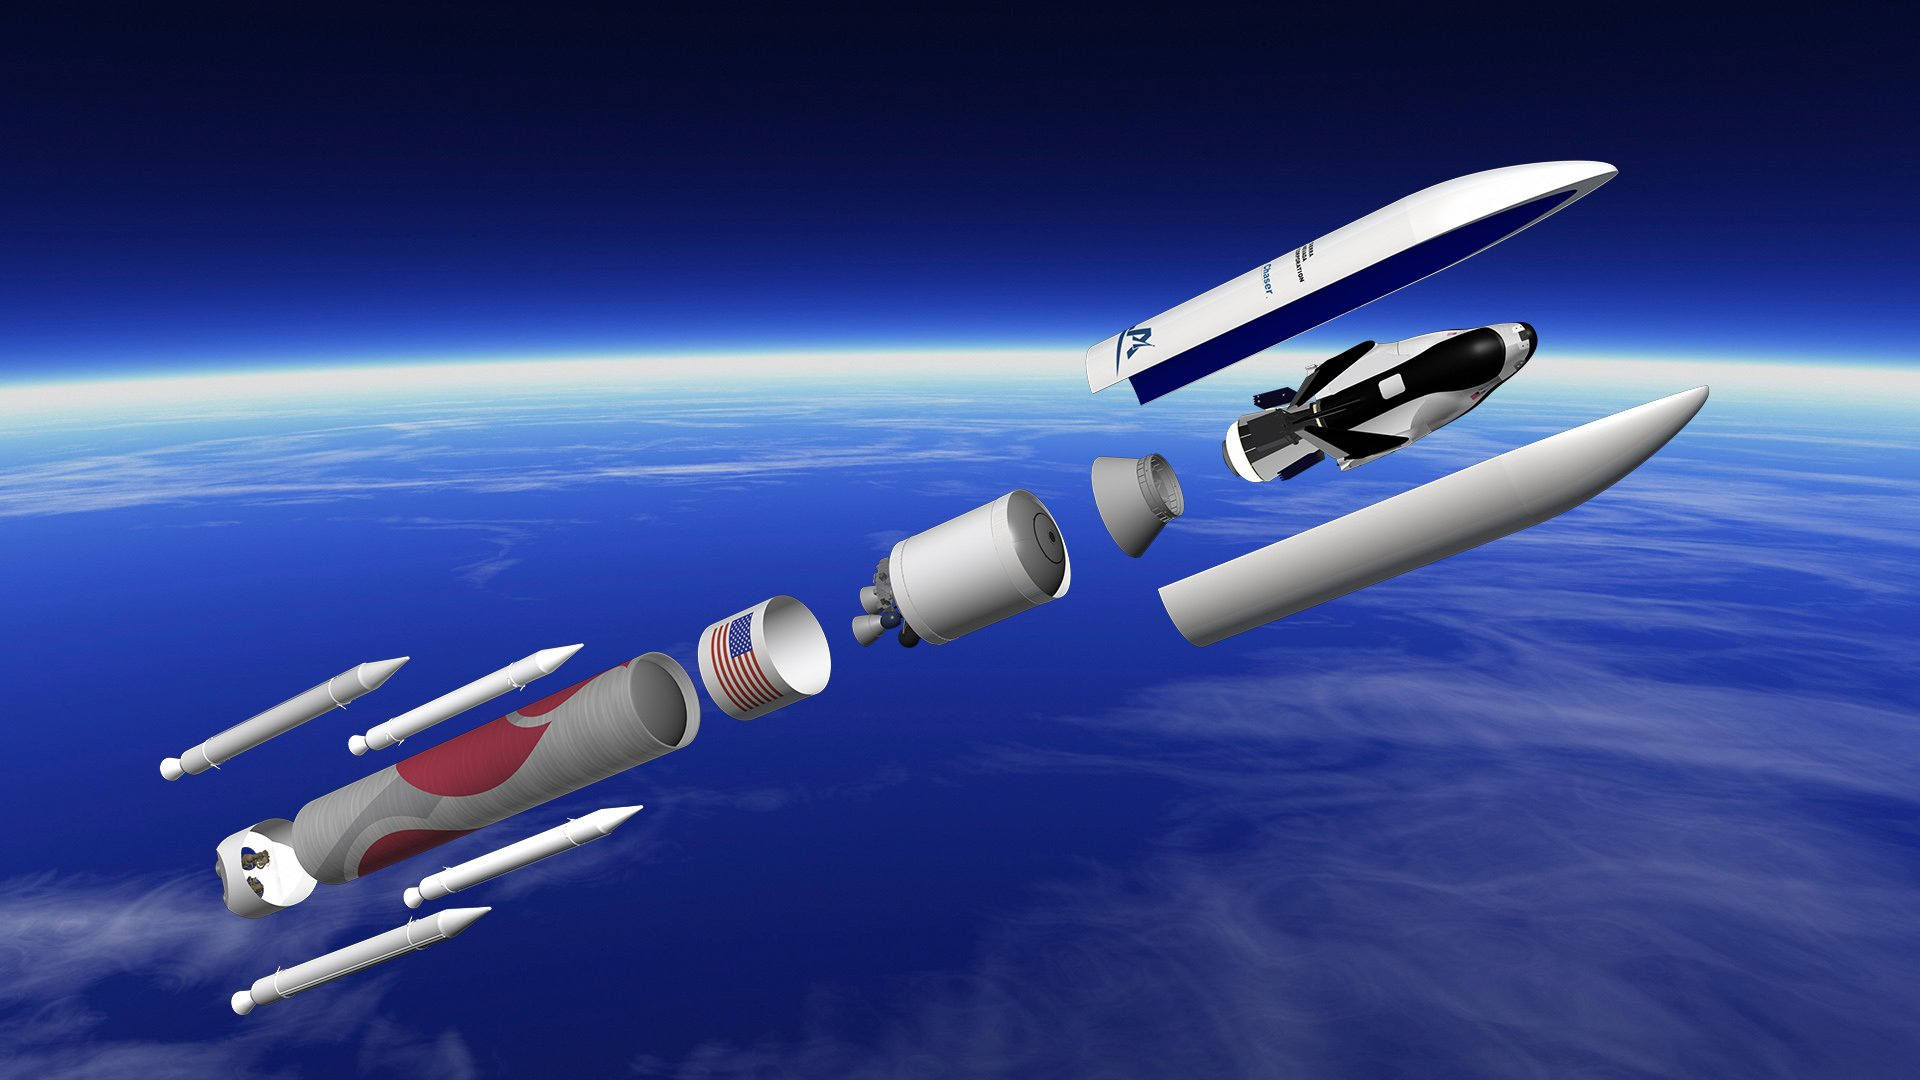 Sierra Nevada selects ULA's Vulcan rocket to launch Dream Chaser ...